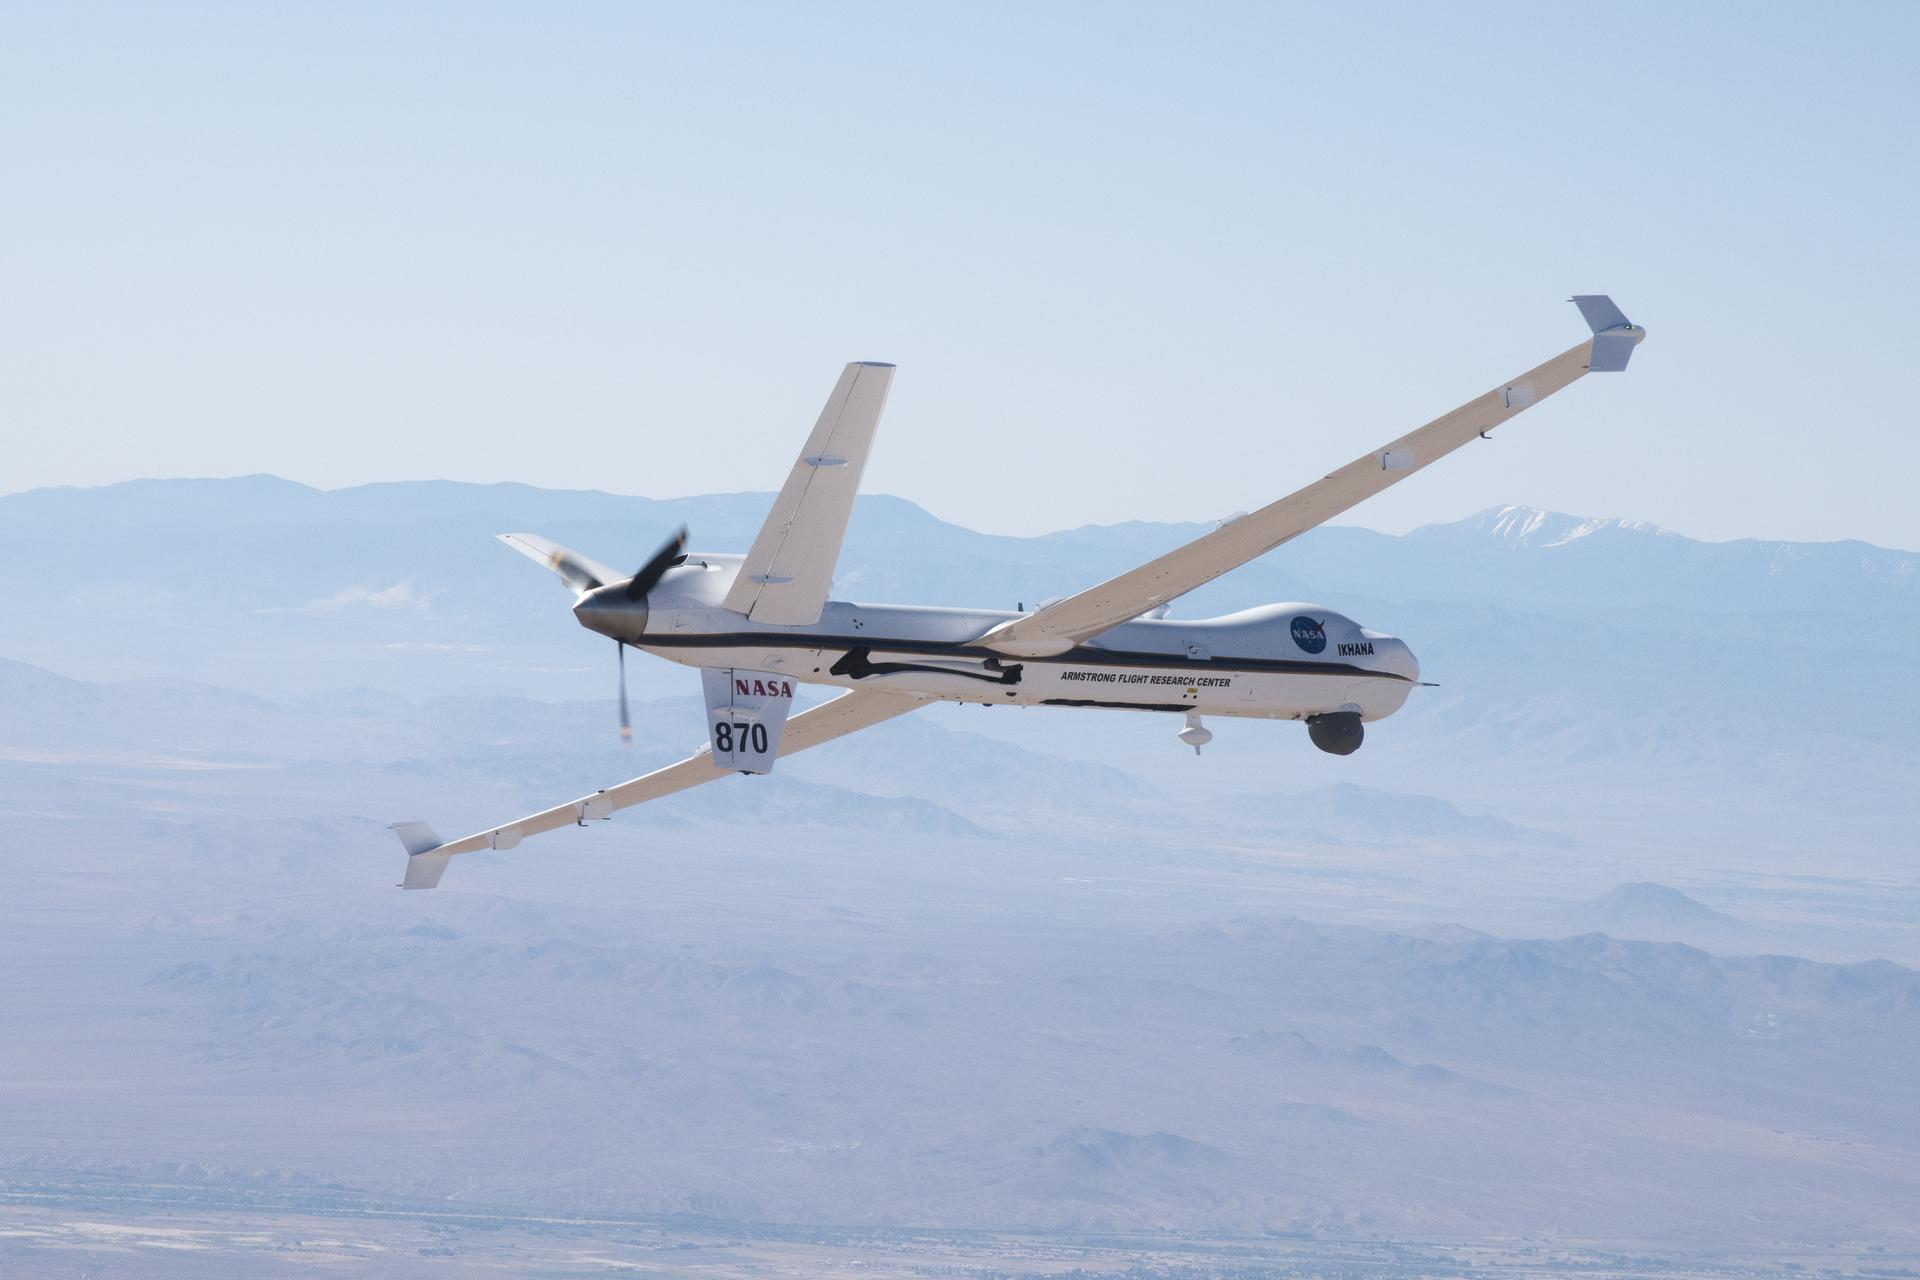 Ikhana, a remotely piloted aircraft, is tested by NASA. Photo credit: NASA